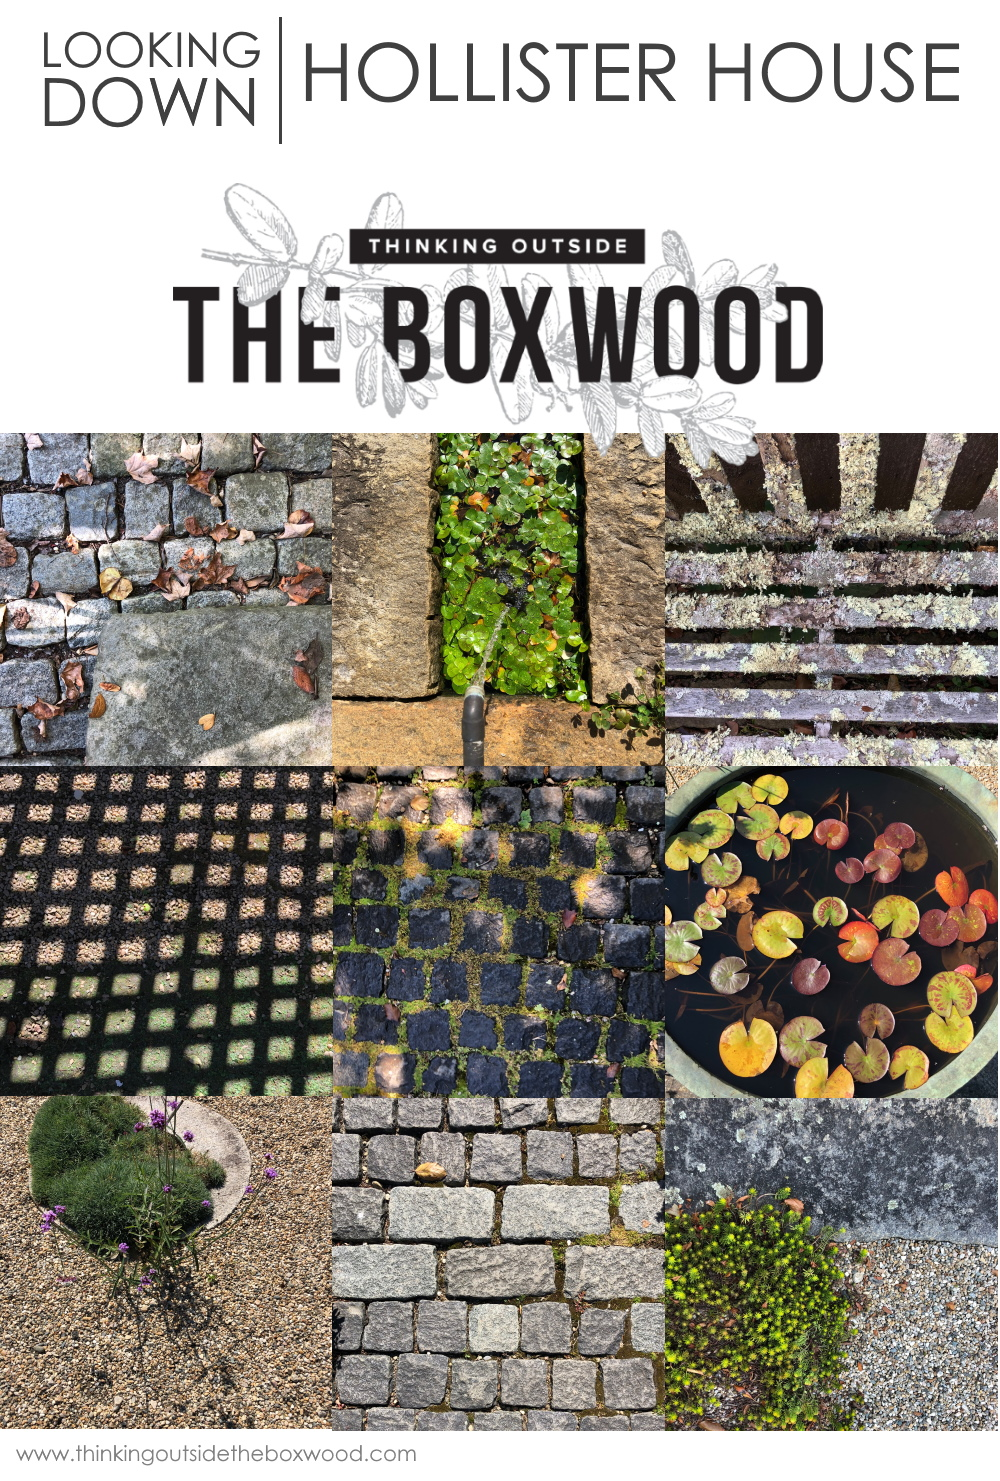 The Traveling Garden Designer - Hollister House Looking down | Thinking Outiside the Boxwood